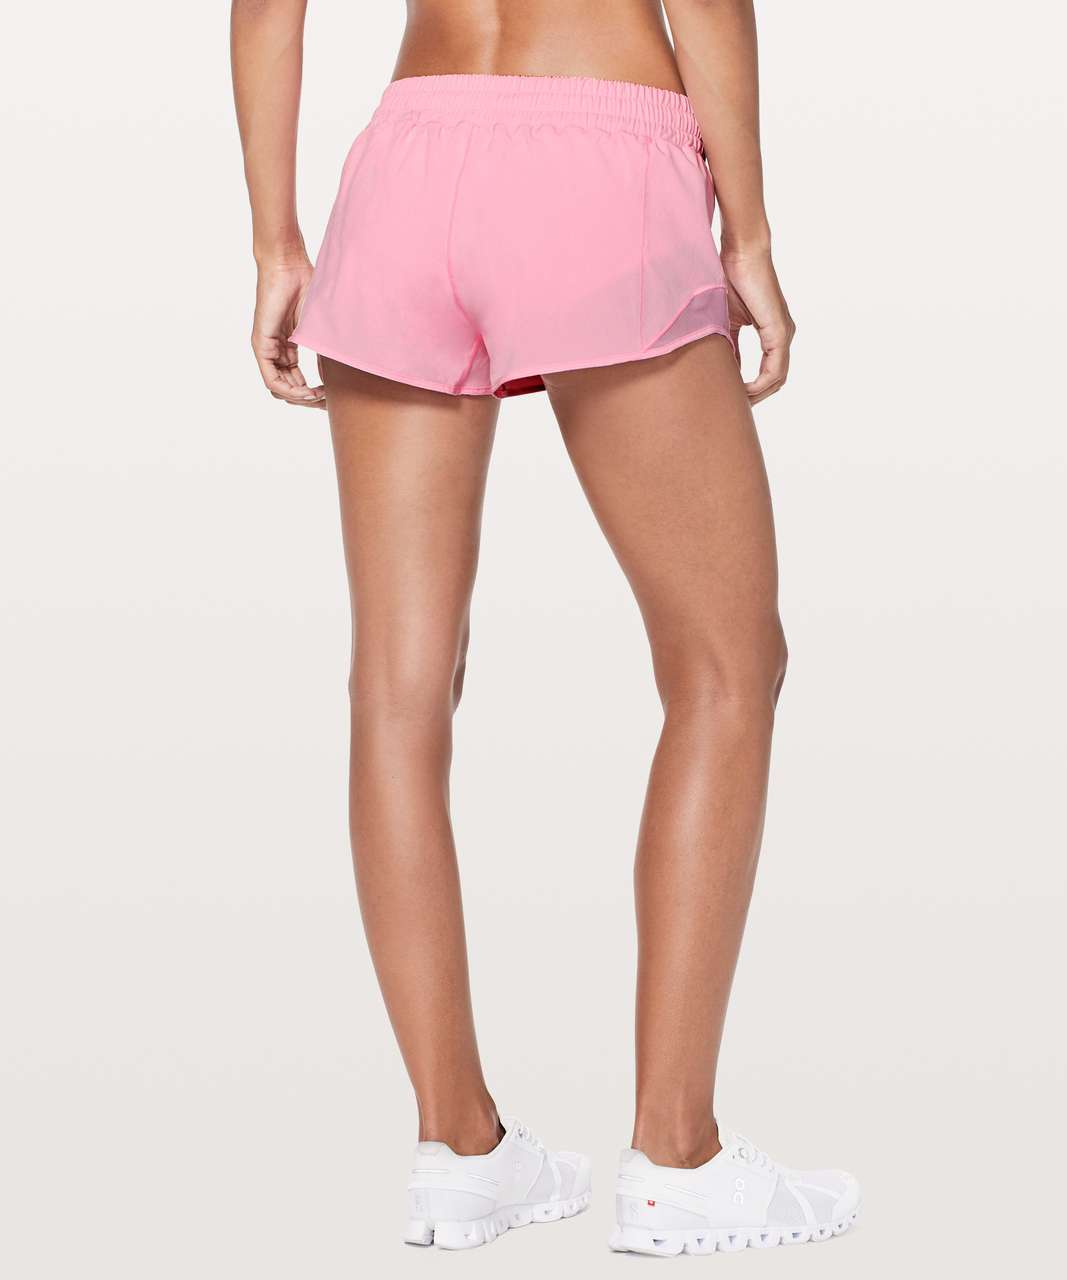 Lululemon Hotty Hot Short Ii 2 5 Miami Pink Lulu Fanatics